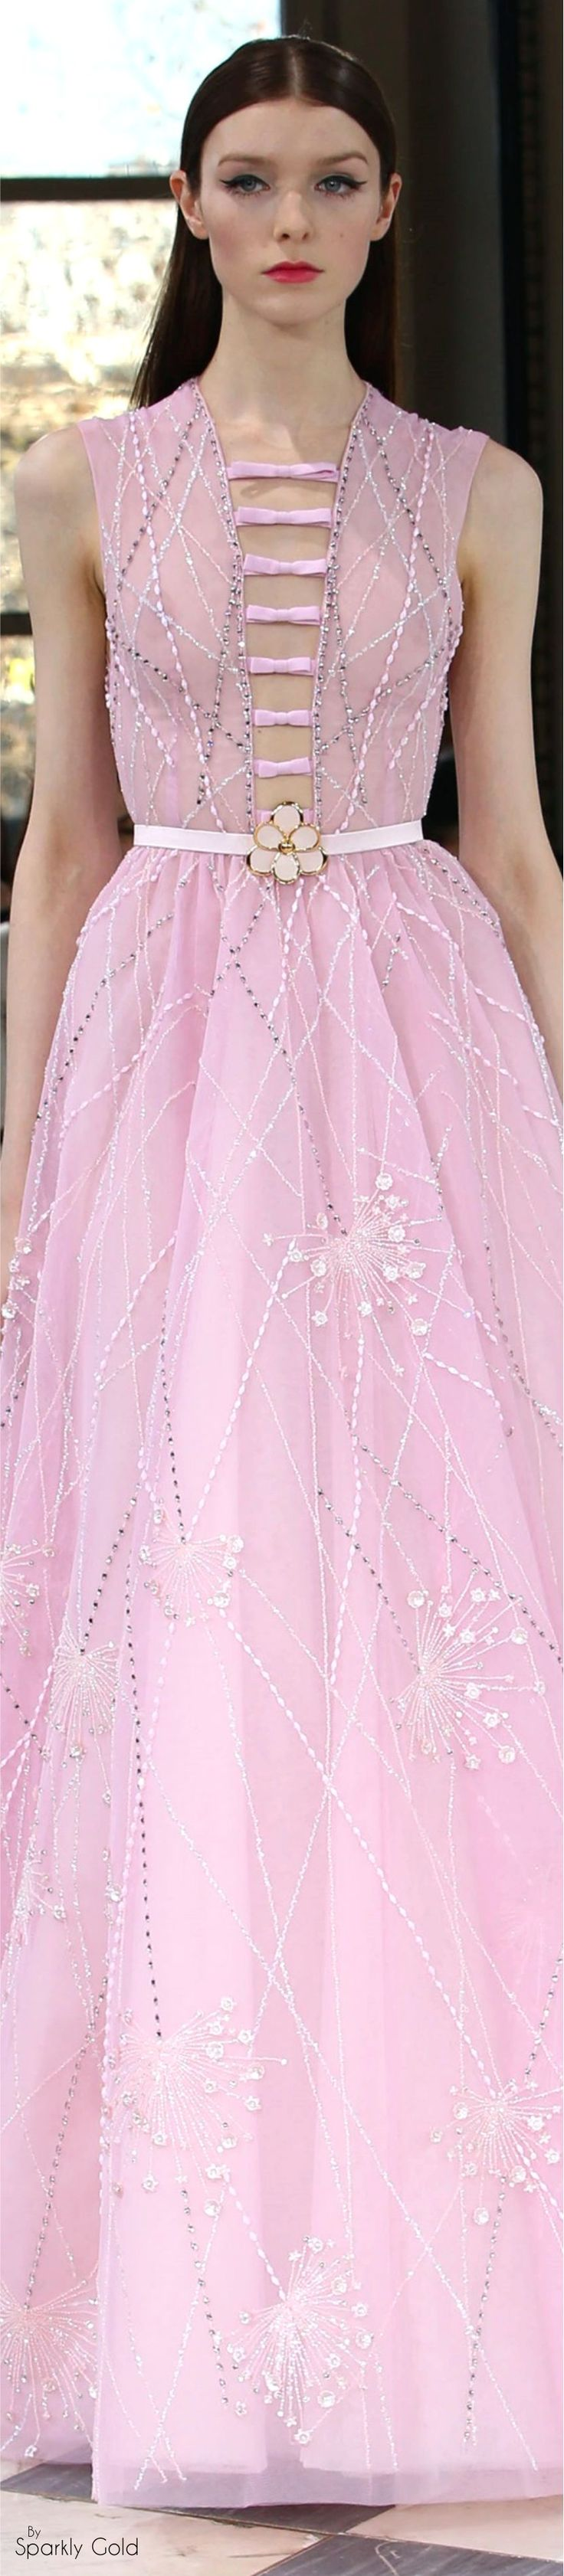 goodliness Cocktail Ball gowns dresses 2017 Cocktail gown 2018 | BB ...